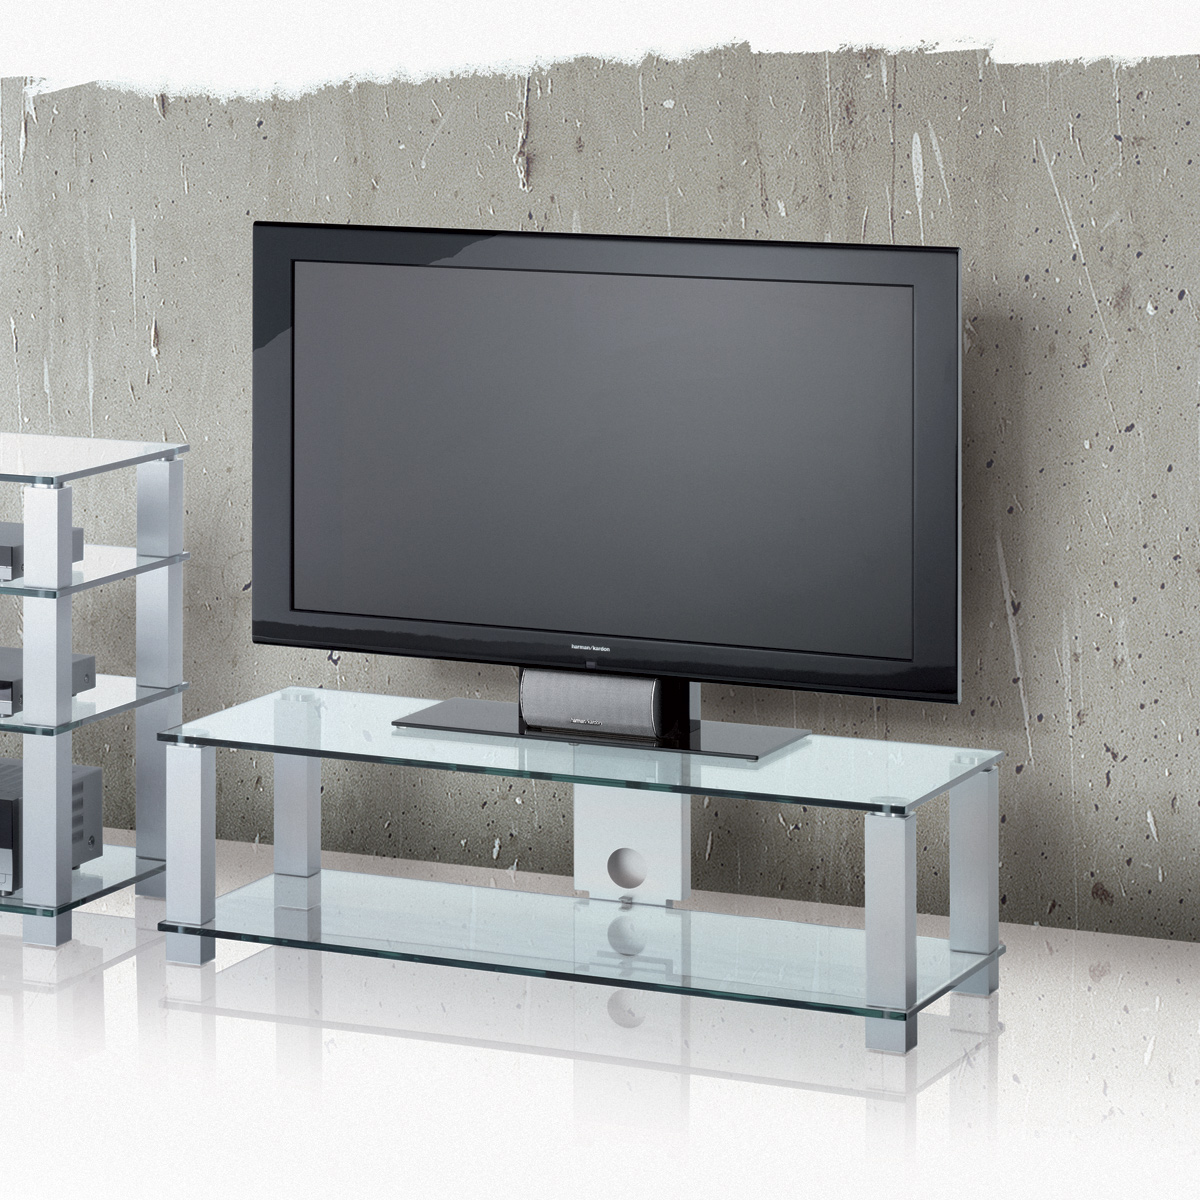 spectral high end hsl613 hsl614 bei hifi tv. Black Bedroom Furniture Sets. Home Design Ideas